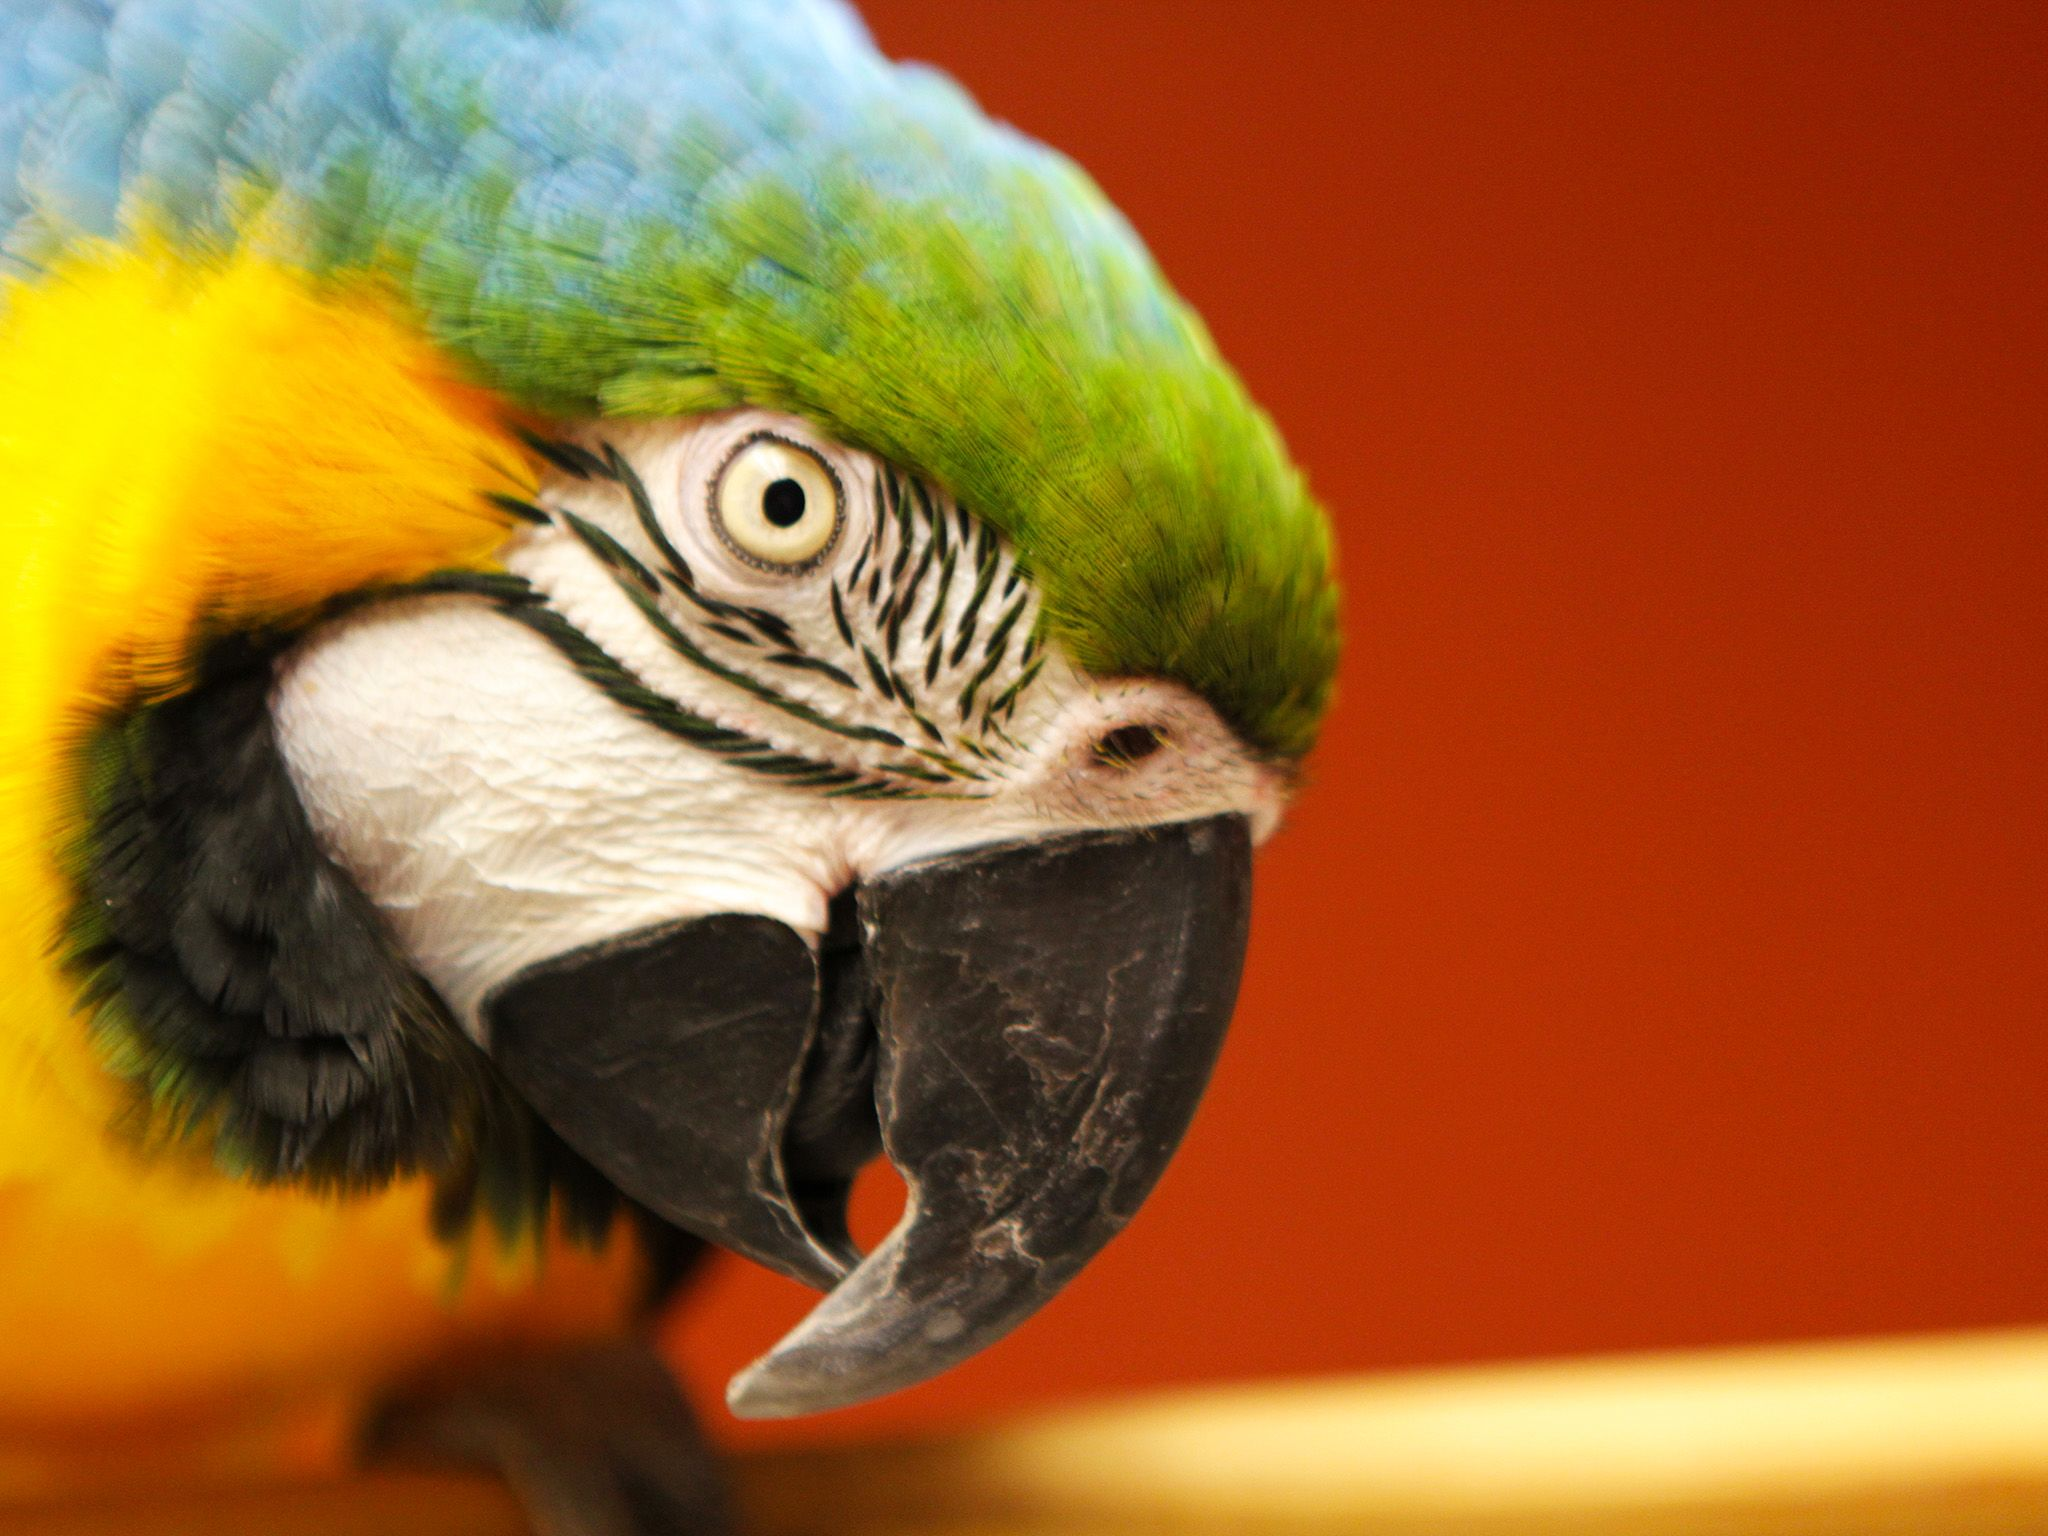 Dr. Kelleher's blue and gold macaw, Xander, sitting on a perch in the treatment room. This image... [Photo of the day - October 2014]